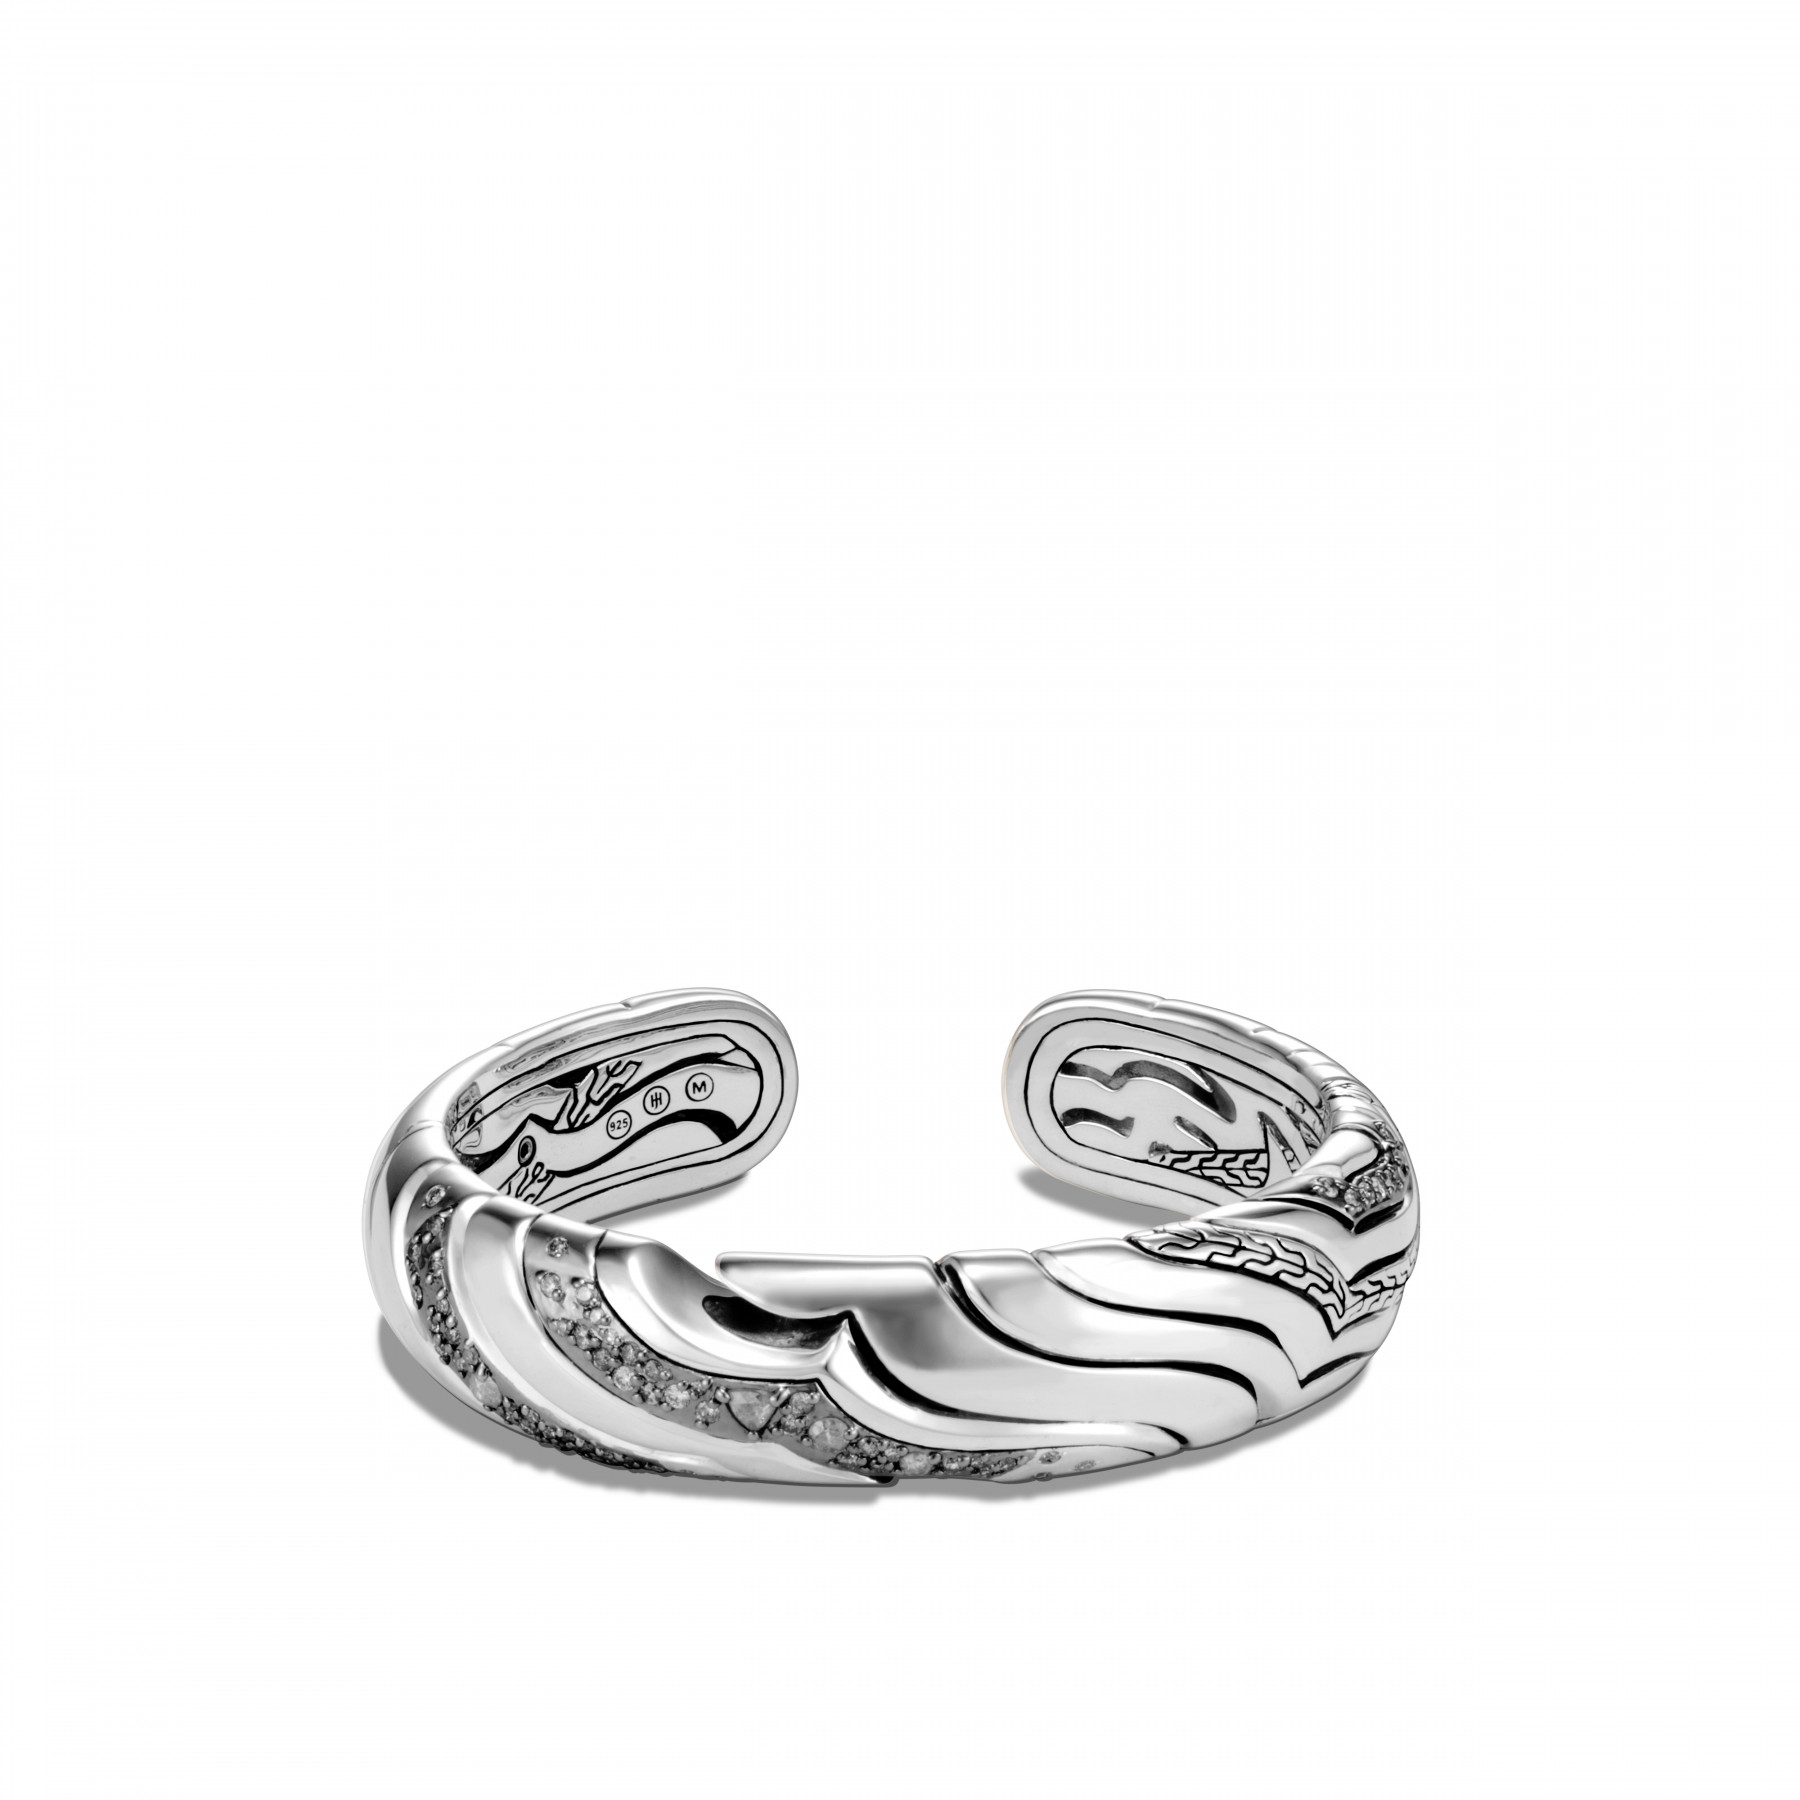 John Hardy Lahar Grey and White Diamond Cuff Bracelet (15mm) front view